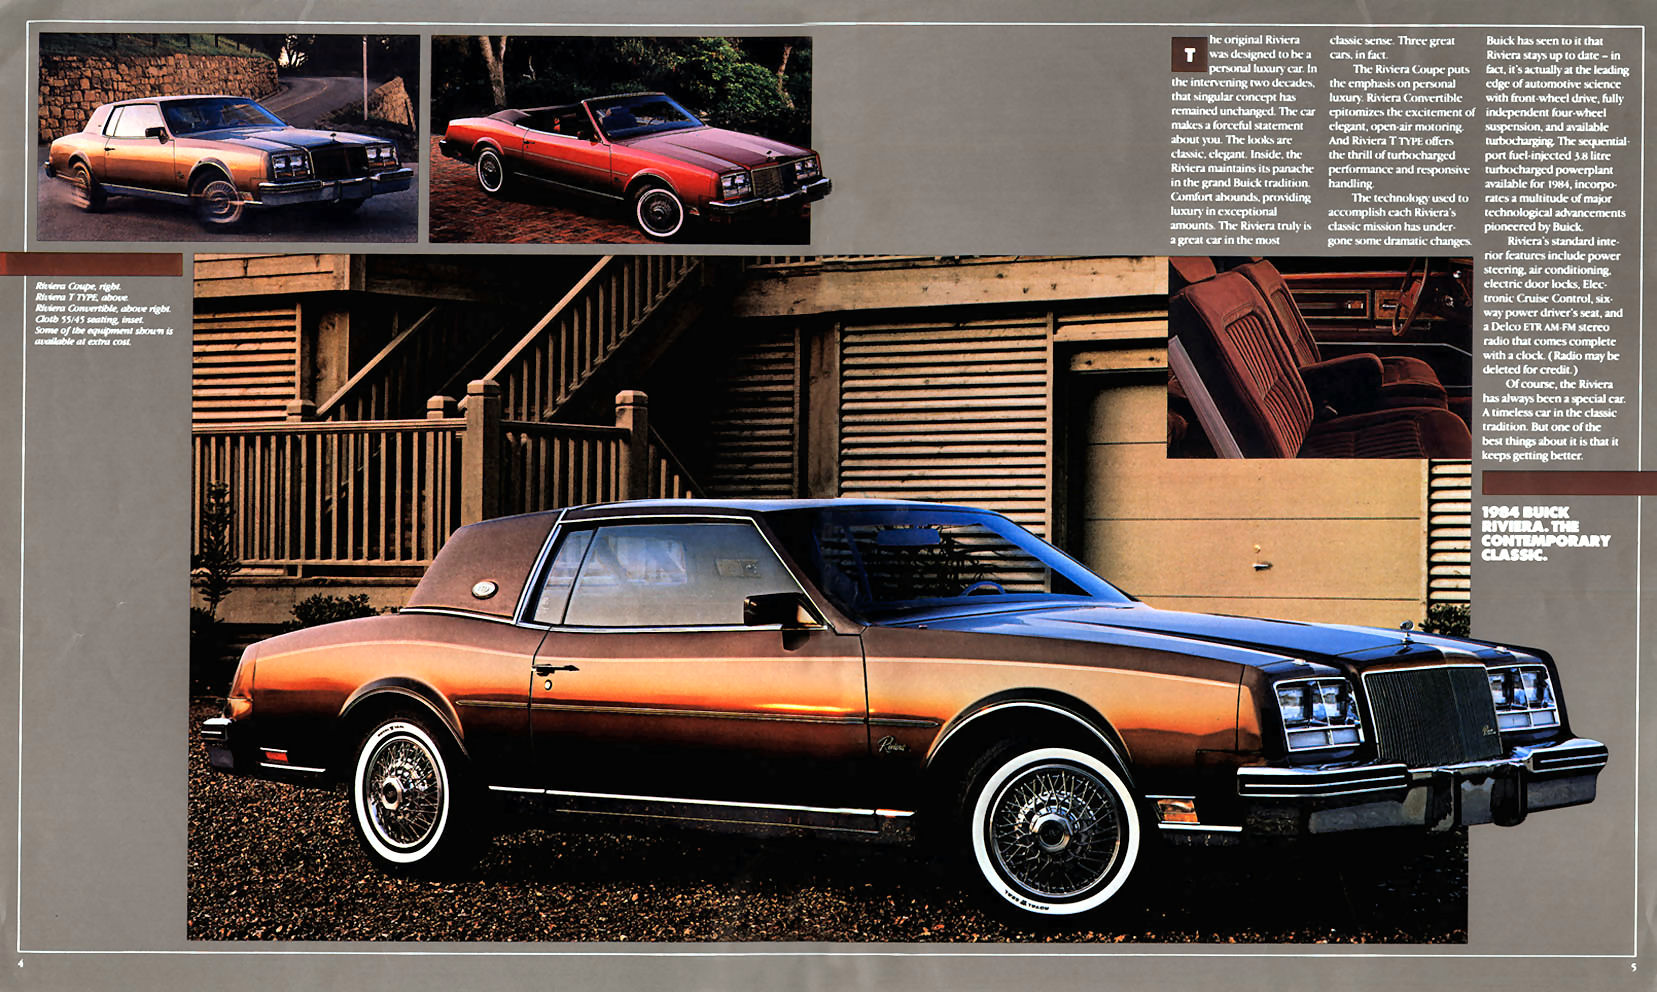 Riviera page from 1984 Buick brochure, linked from the Old Car Manual Project's amazing brochures section.